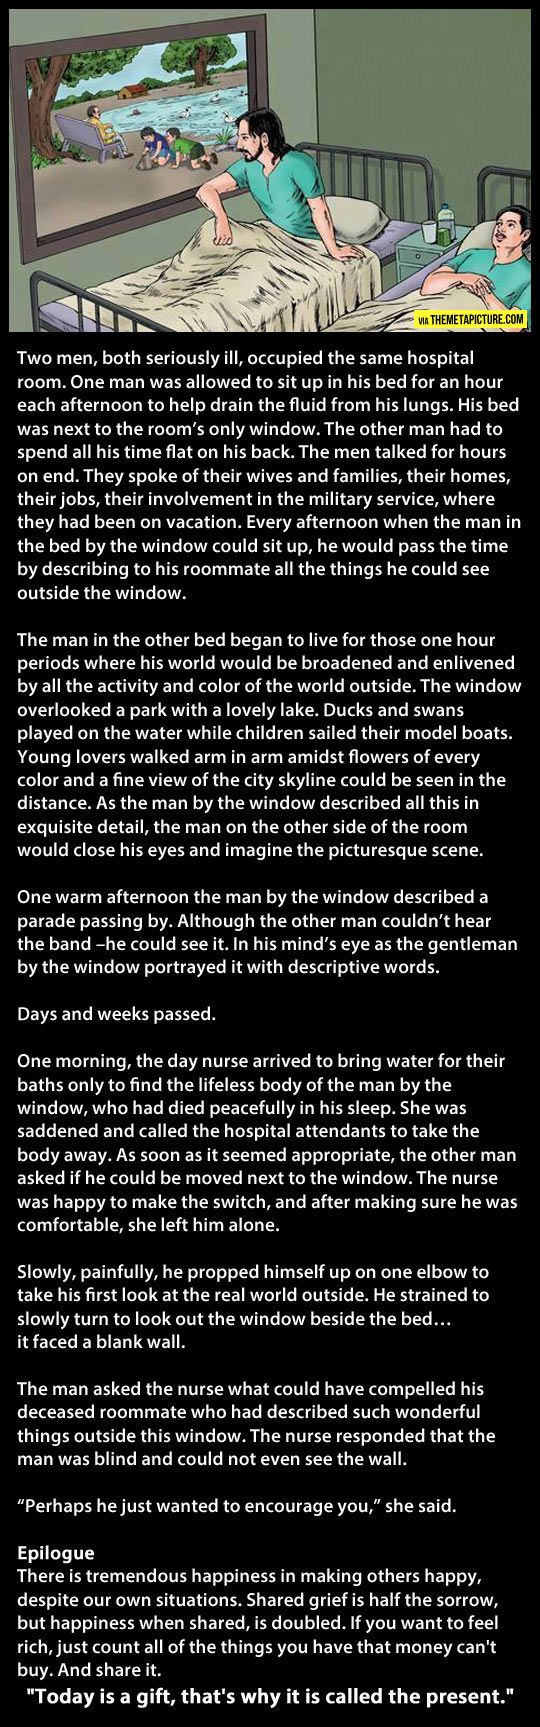 """The hospital window"" beautiful story. teared up a bit, must admit. faith in humanity restored. #encouragement"